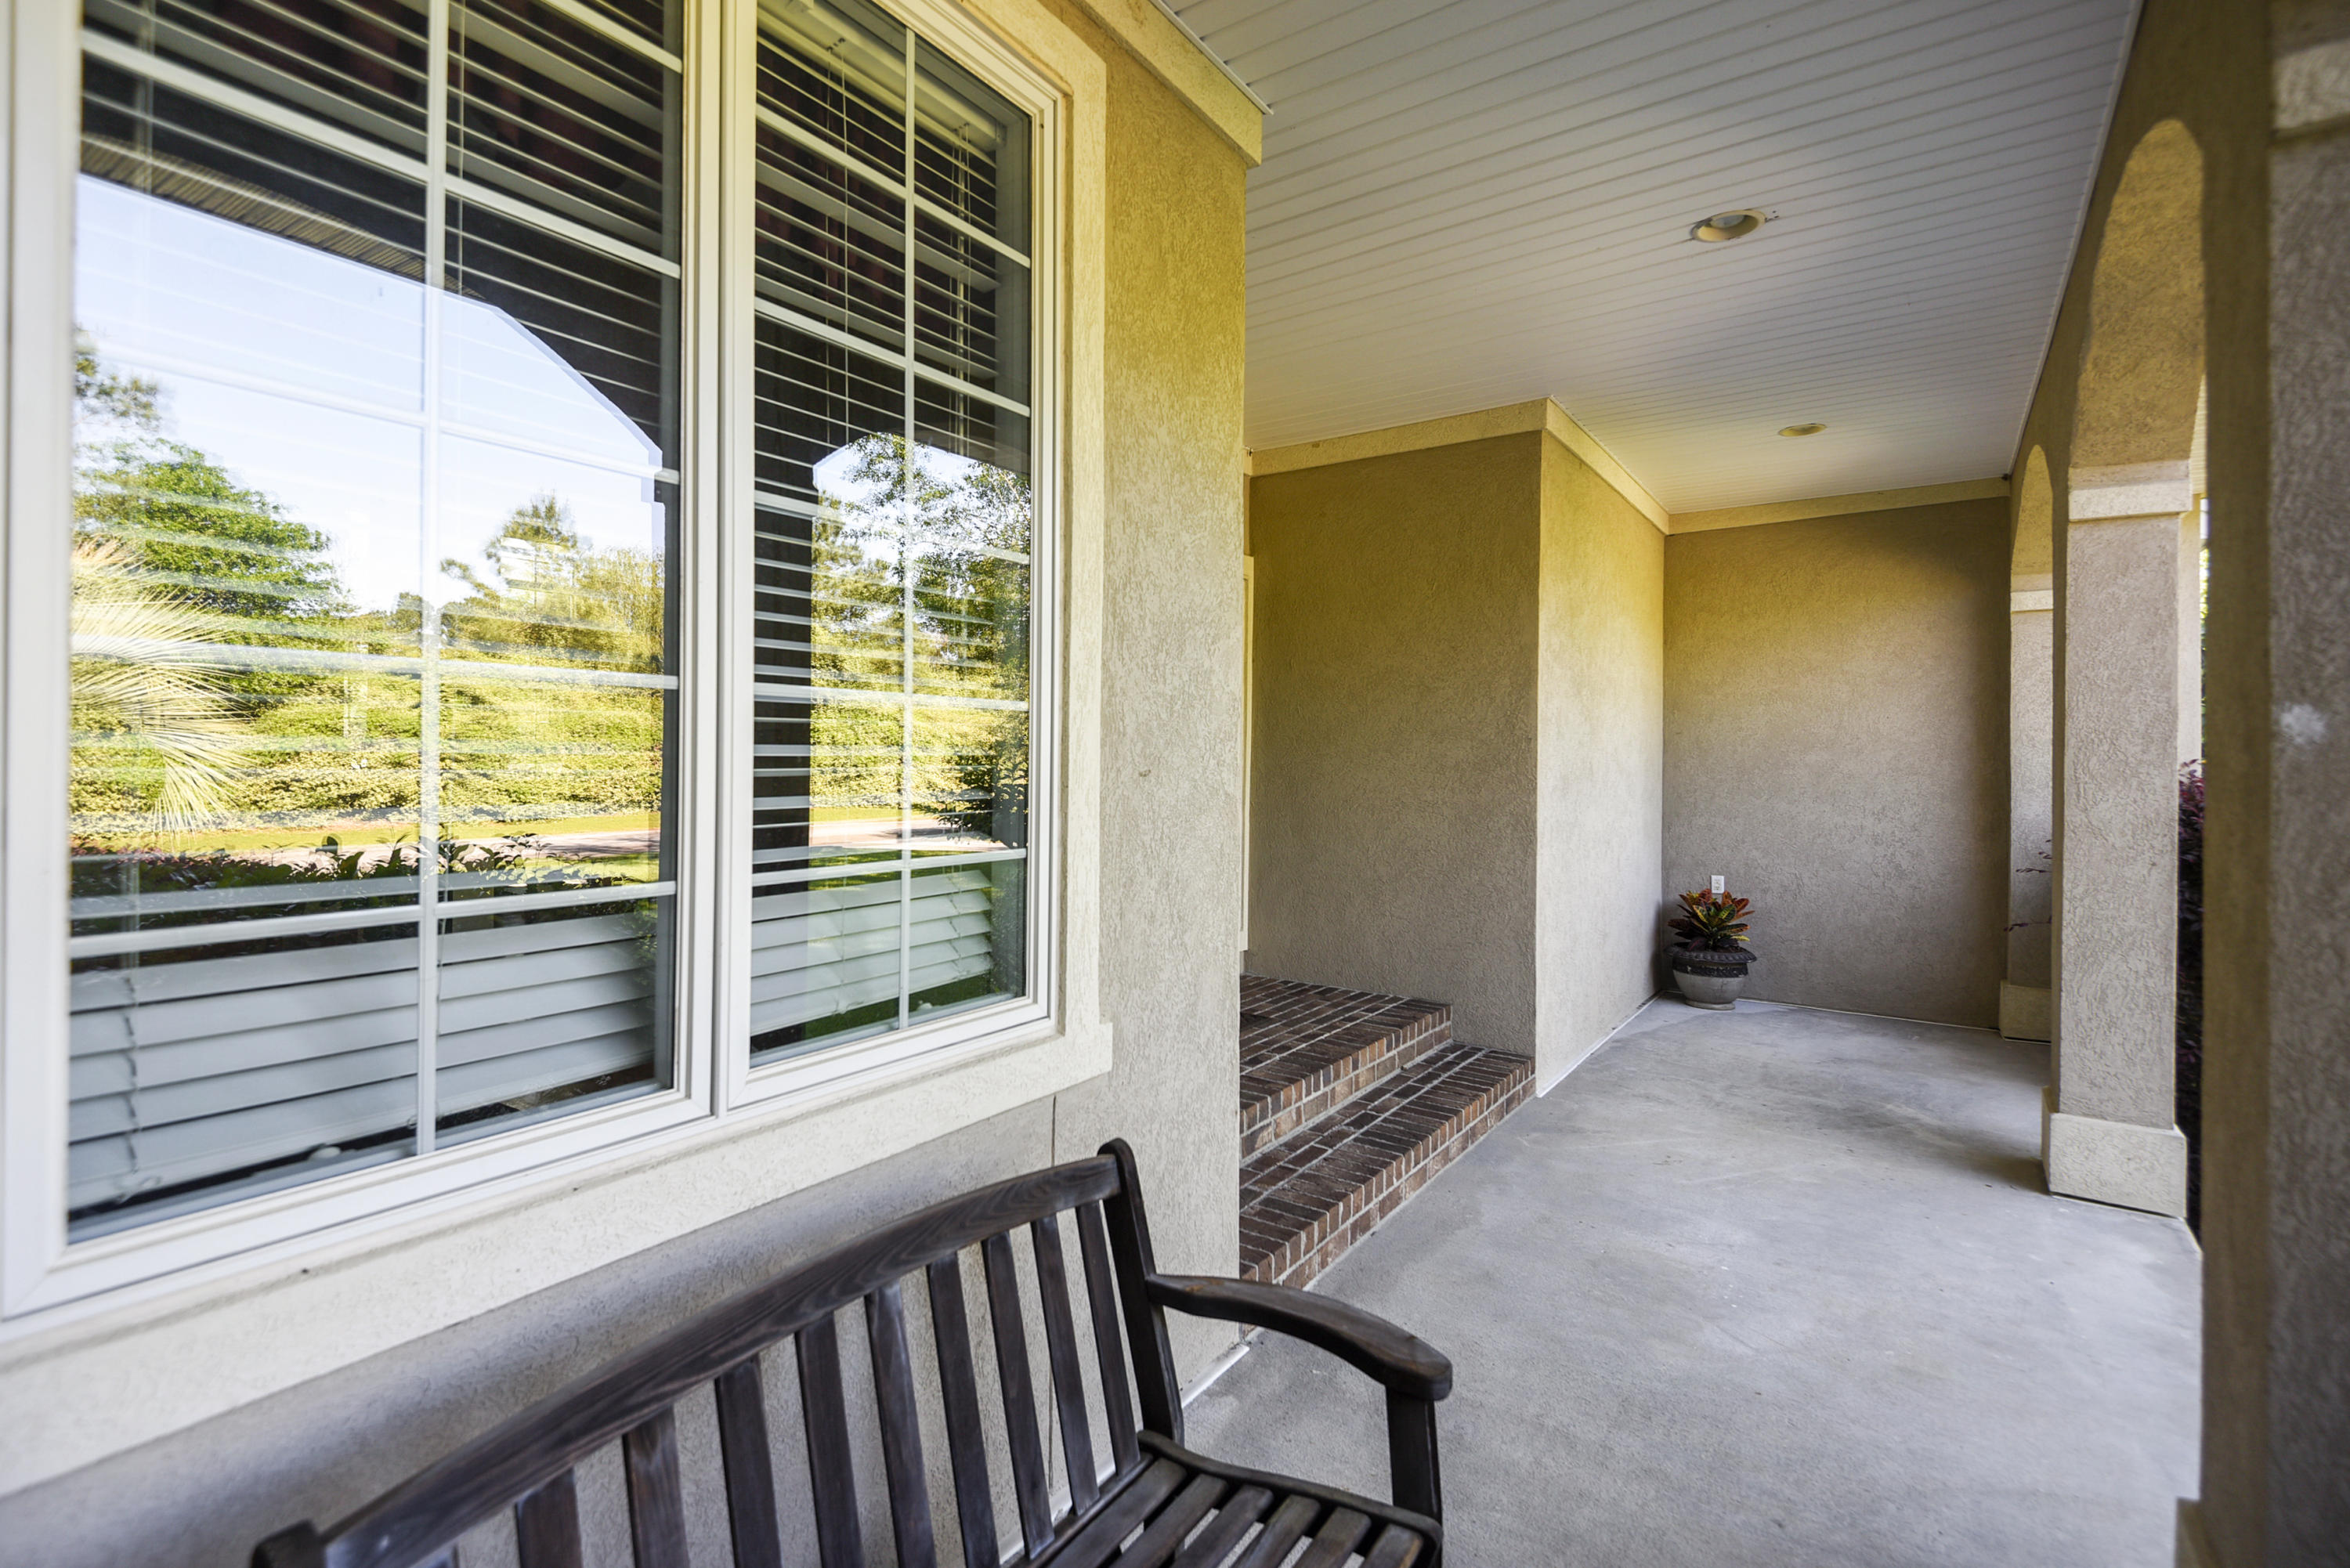 Coosaw Creek Country Club Homes For Sale - 8855 Fairway Woods, North Charleston, SC - 55